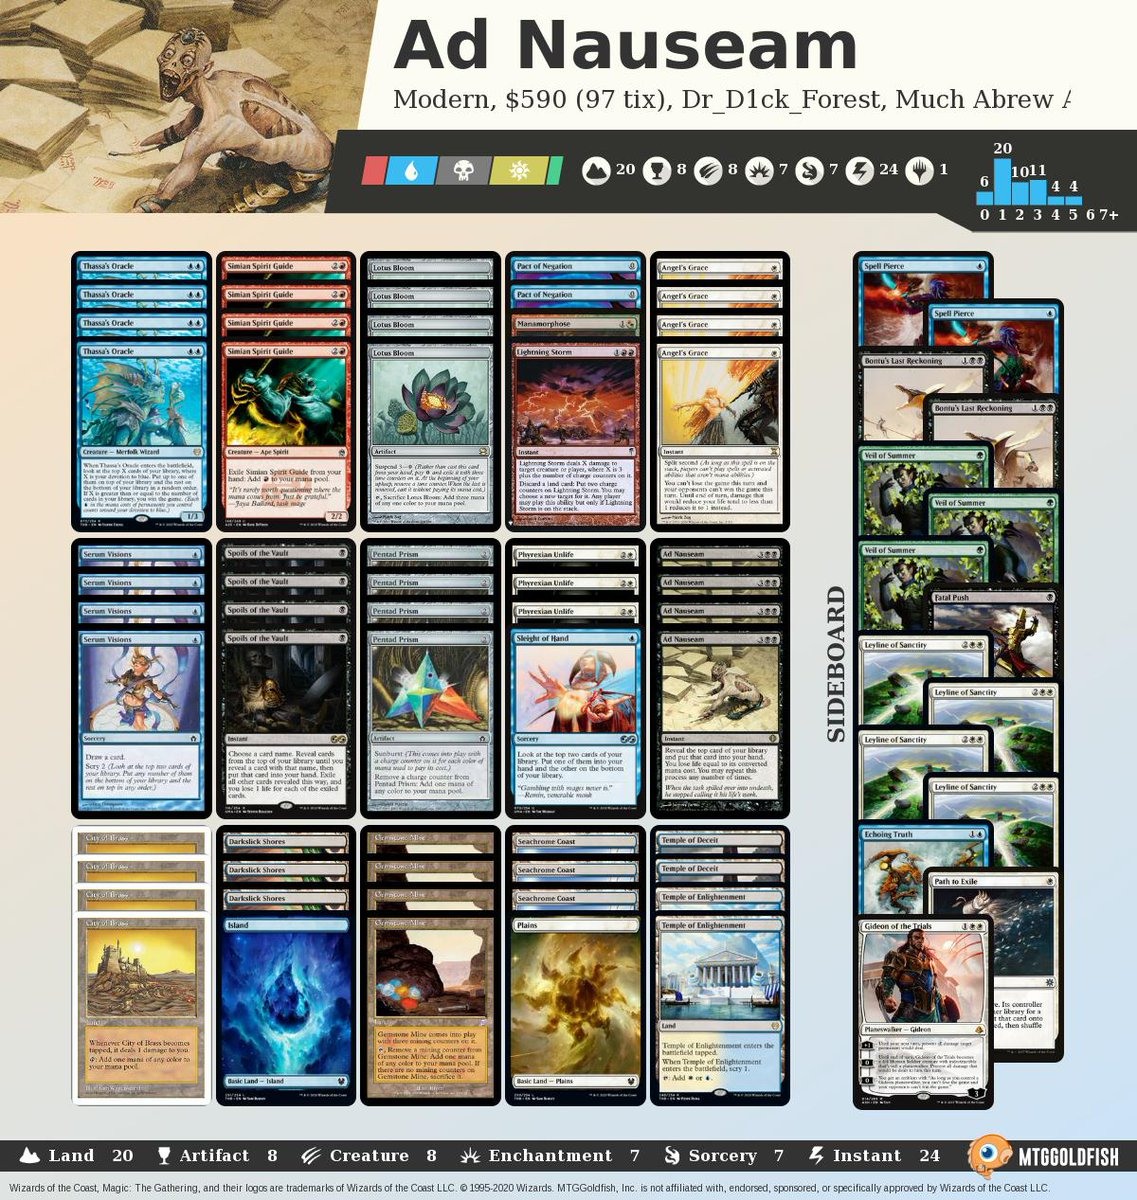 Much Abrew: Ad Nauseam (Modern) mtggoldfish.com/articles/much-… #mtg #mtgo #muchabrew